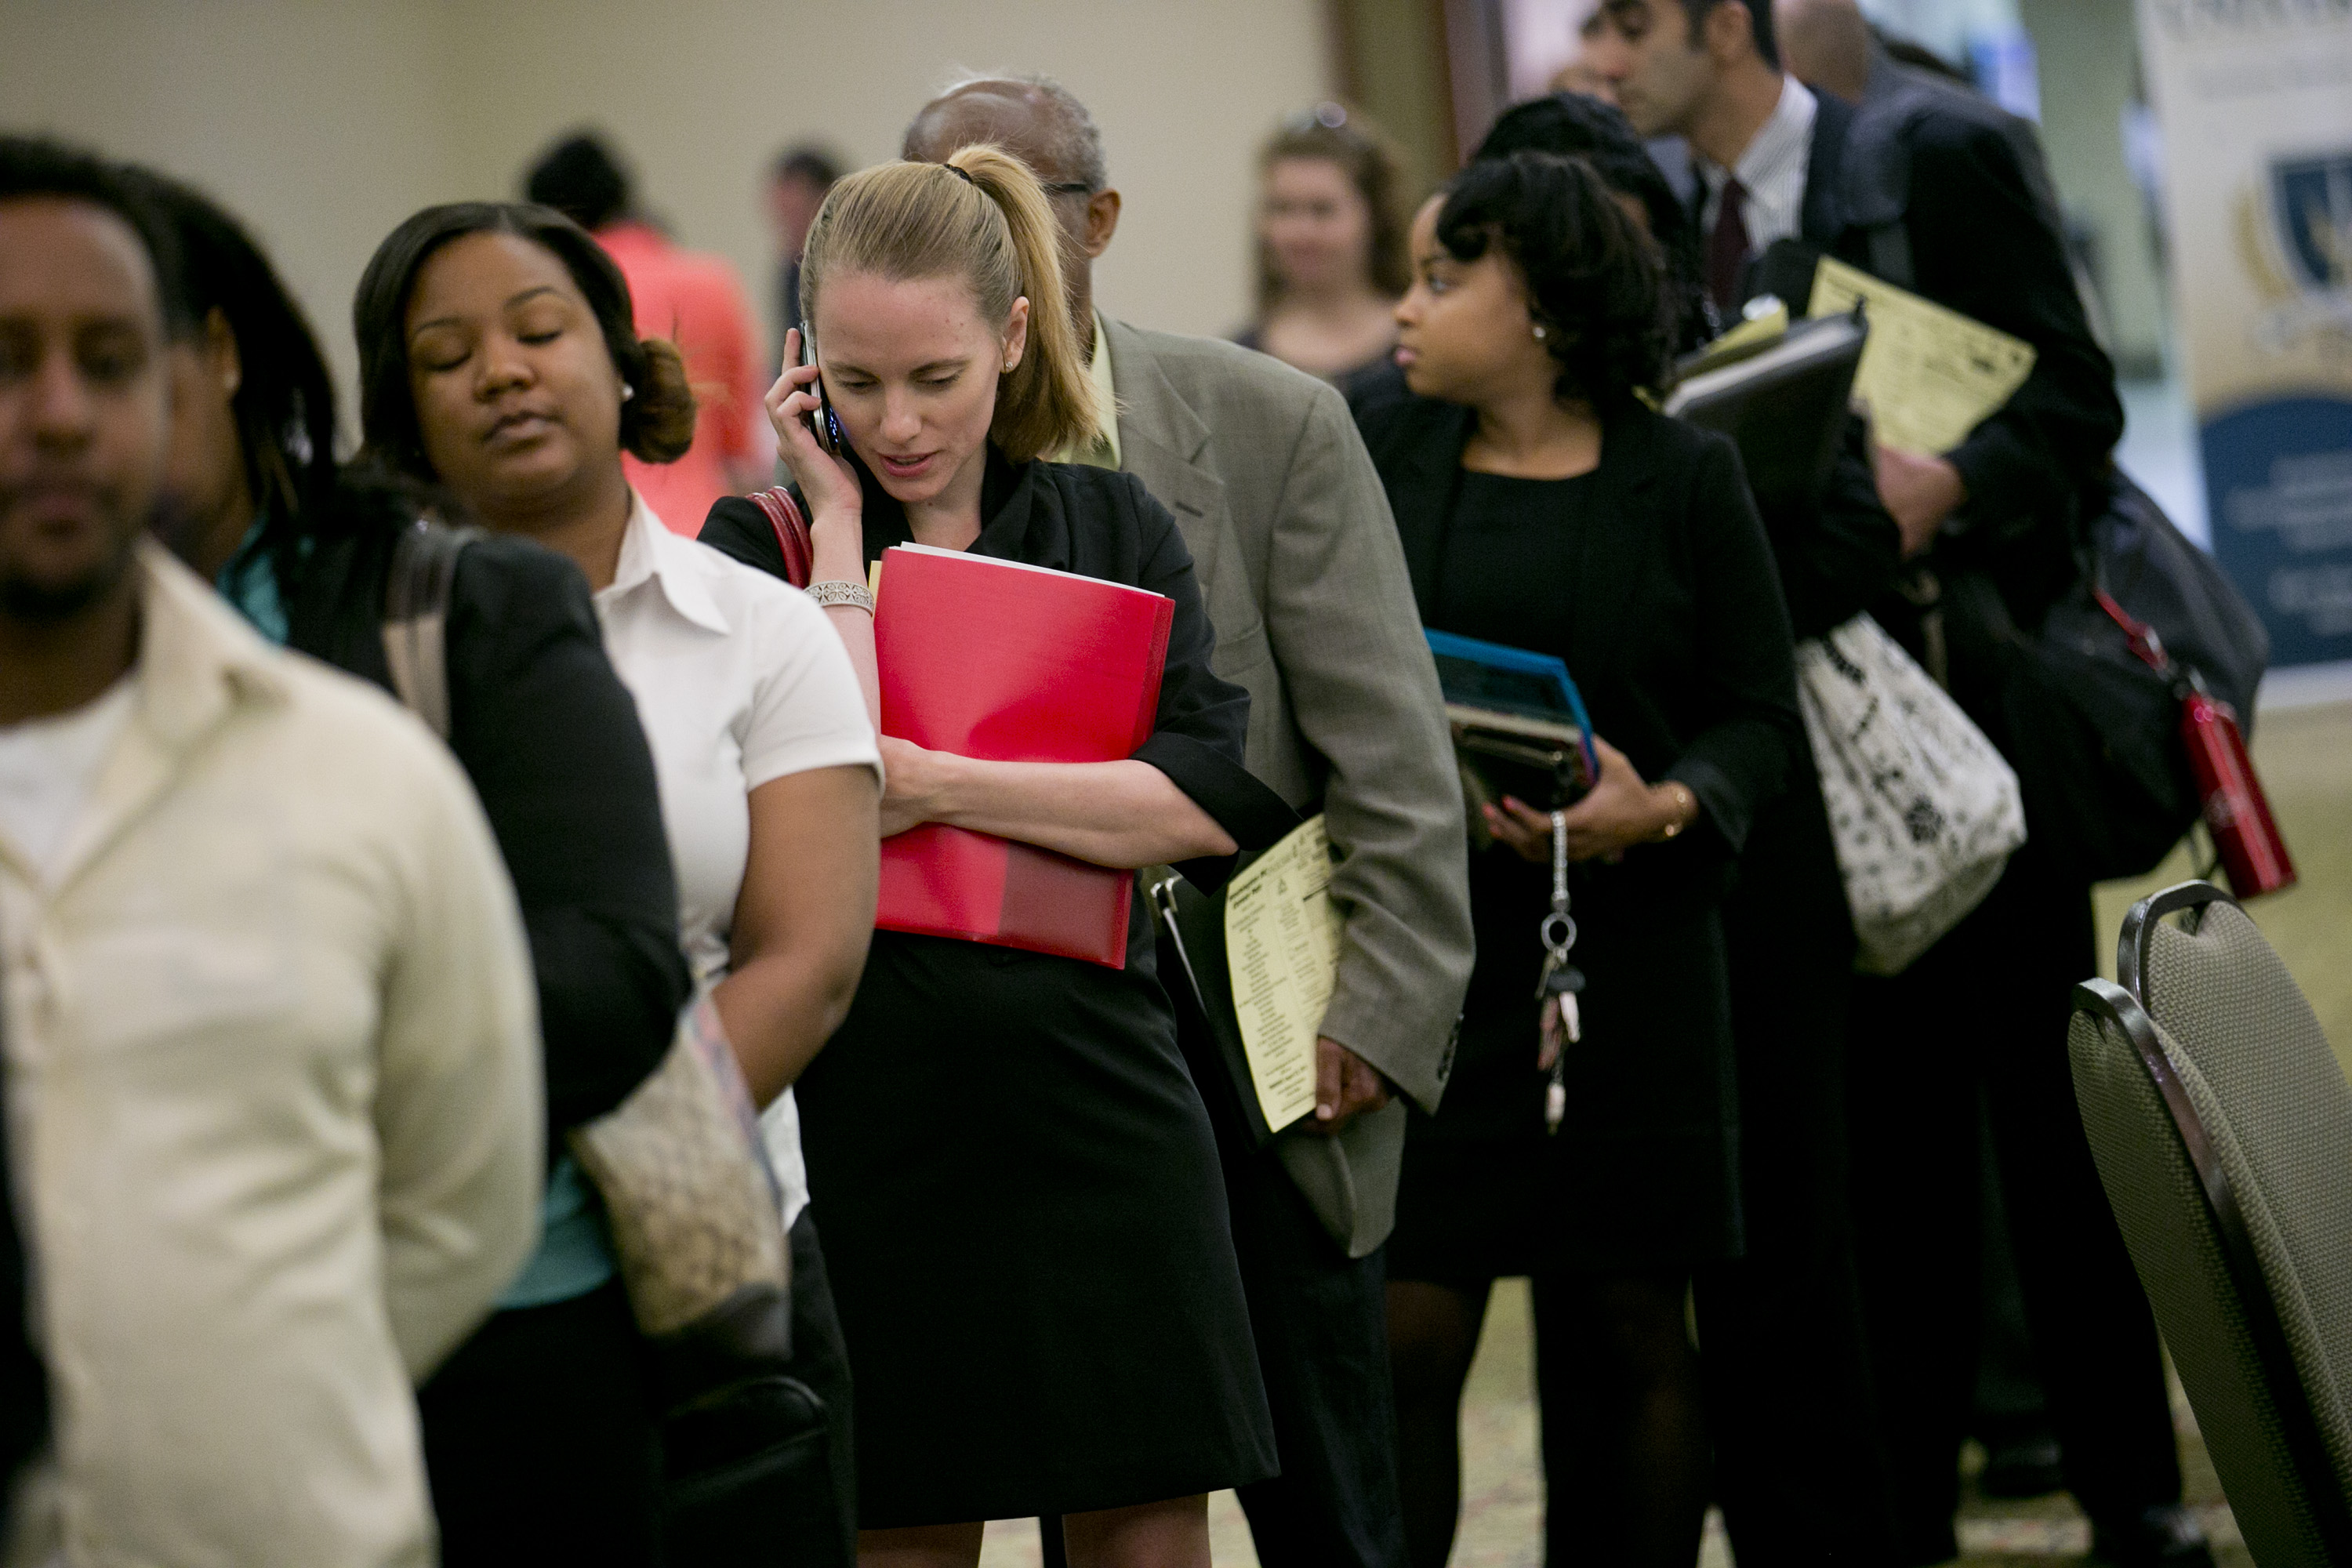 Inside A Career Fair Ahead Of Jobless Claims Figures